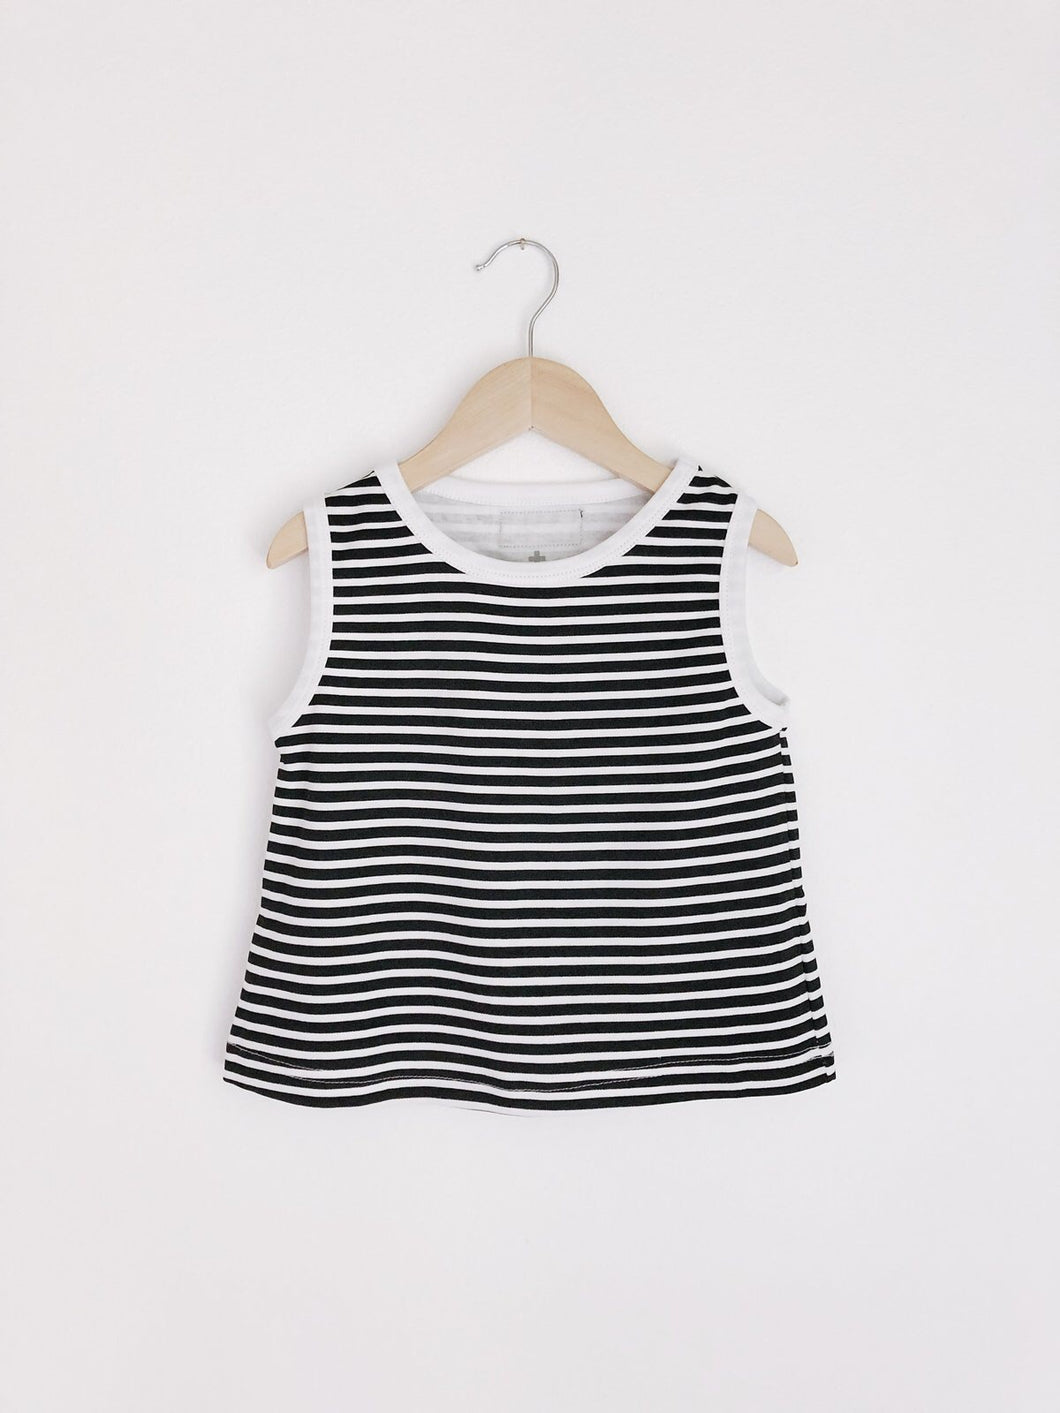 Basic Tank- Black and White Striped